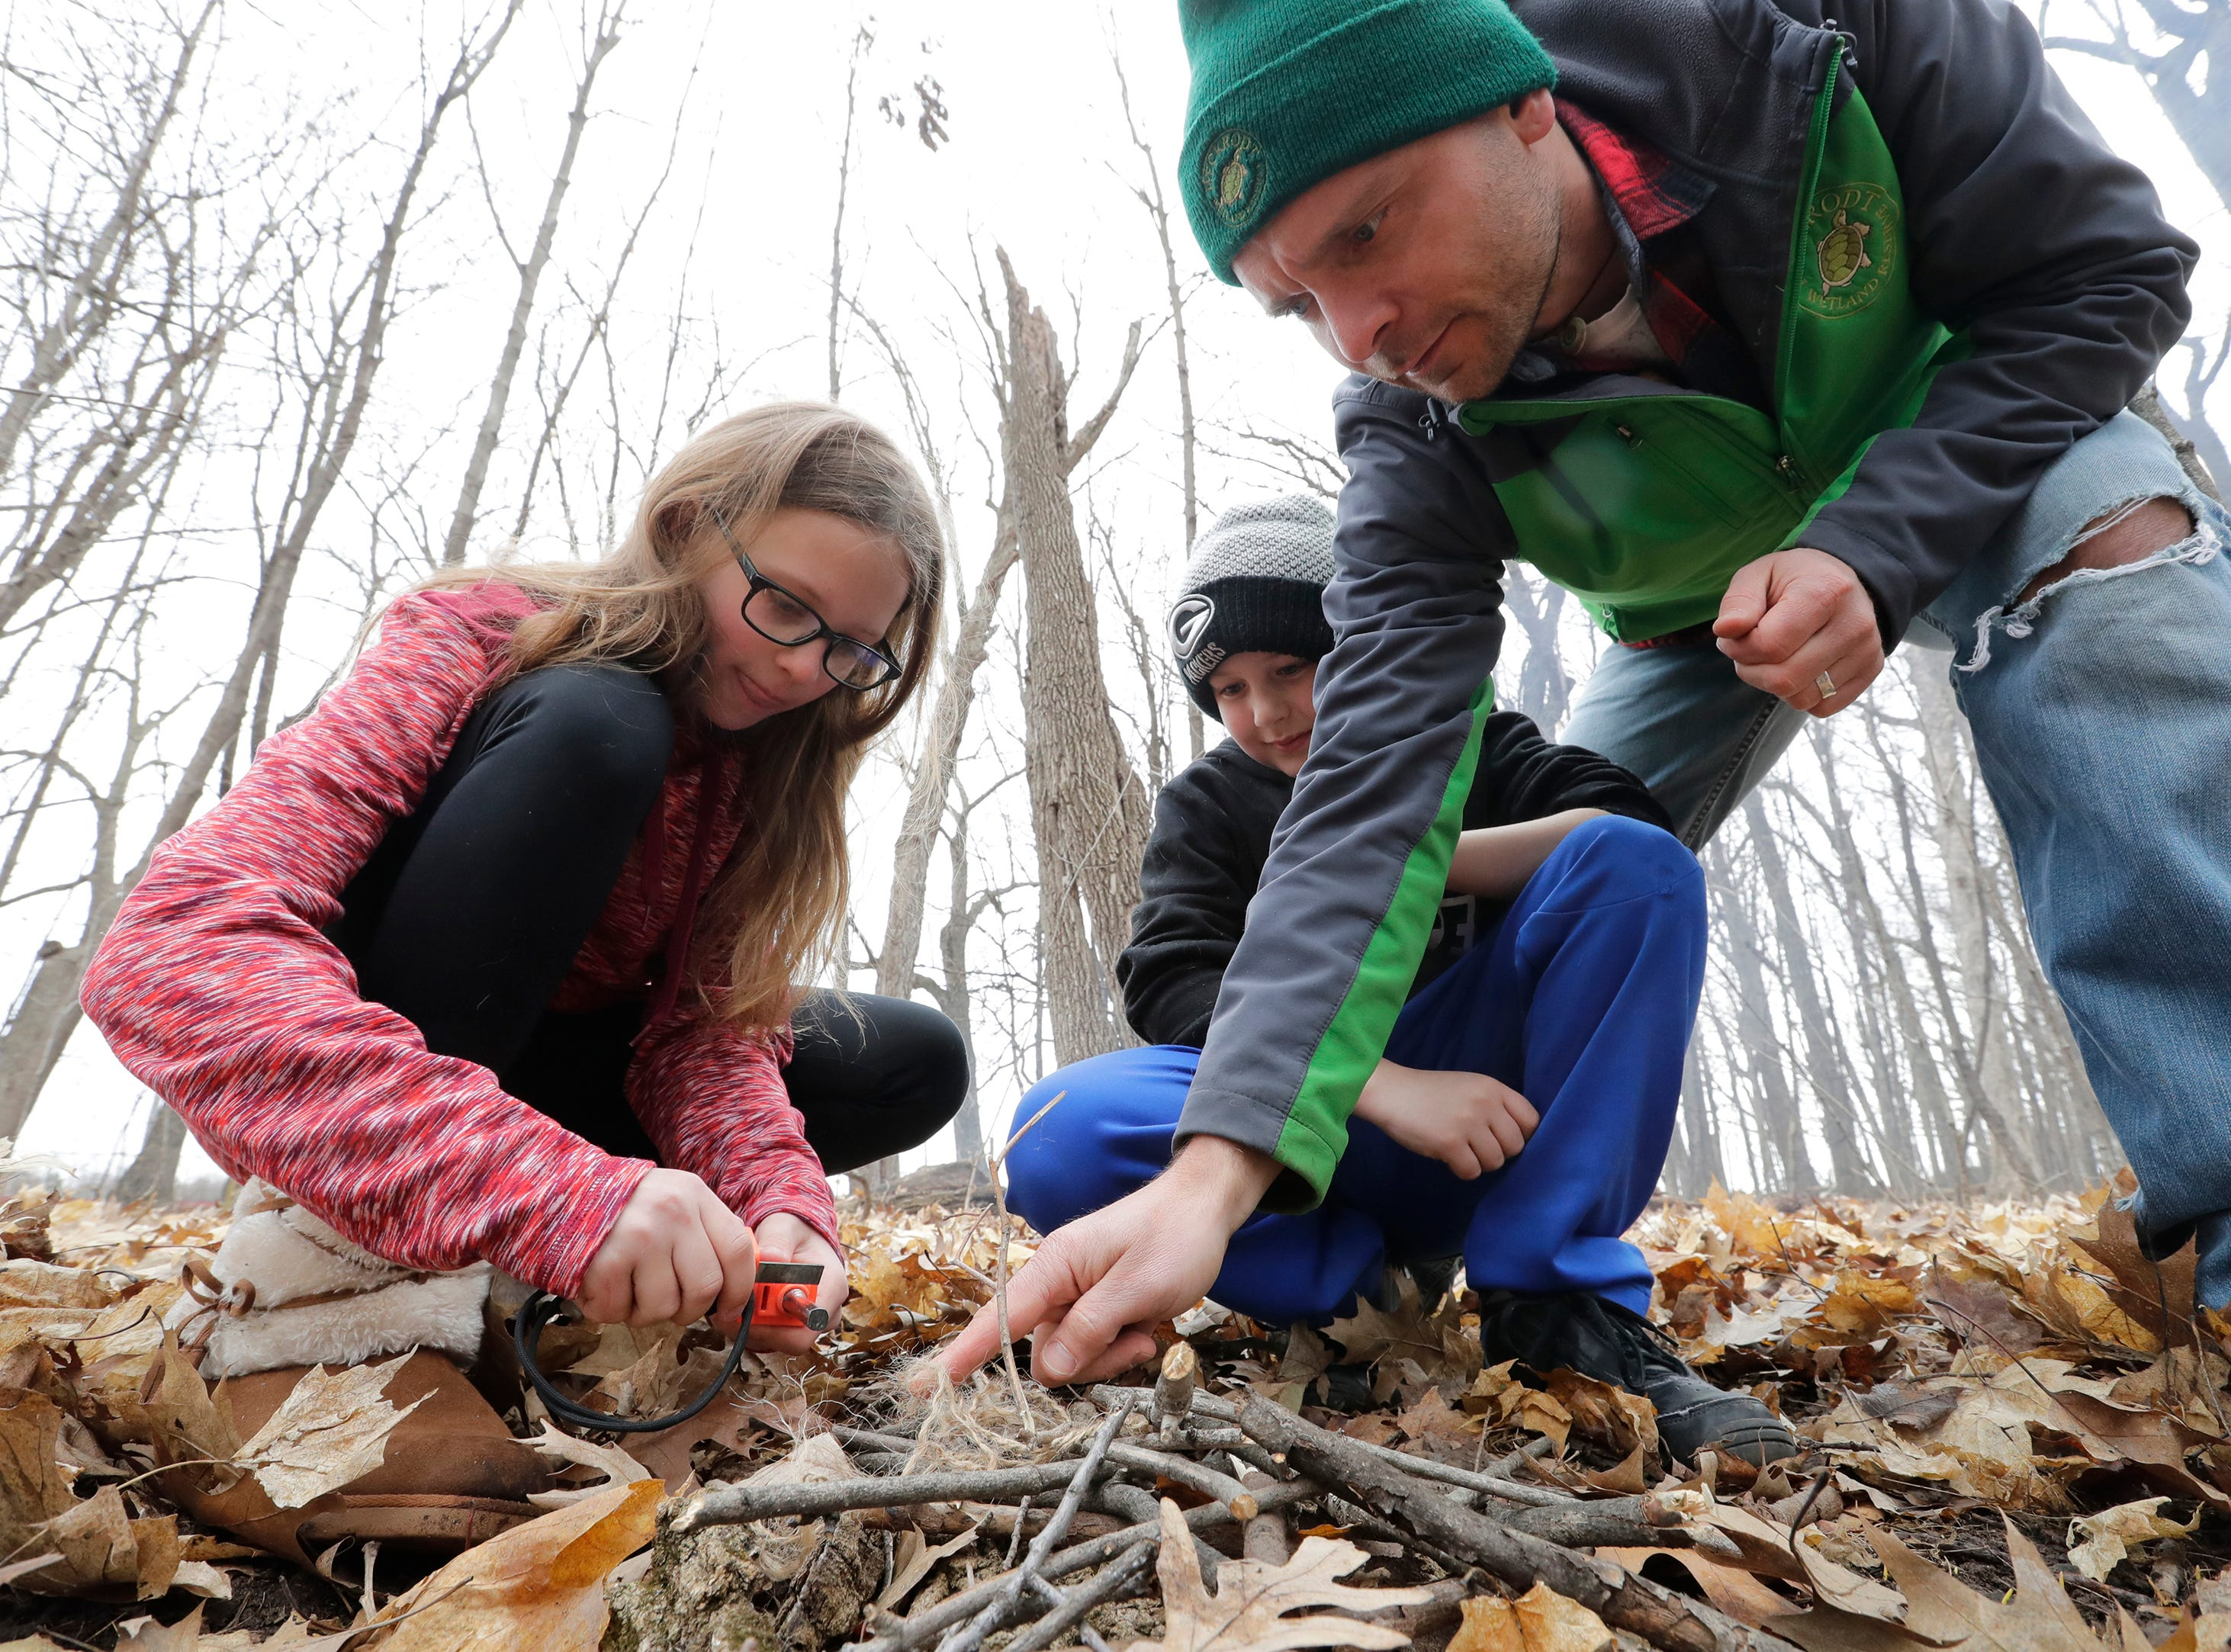 Ivy Ebel, 11, left, and Vincent Thiel, 8, learn how to build a fire in the wilderness with the assistance of Luke Schiller, director of education at Heckrodt Wetland Reserve, Thursday, March 28, 2019, at Memorial Park in Neenah, Wis. Heckrodt Wetland Reserve partnered with the Neenah Park and Recreation department to teach kids how to build shelters and fires outside during this one day event.Dan Powers/USA TODAY NETWORK-Wisconsin